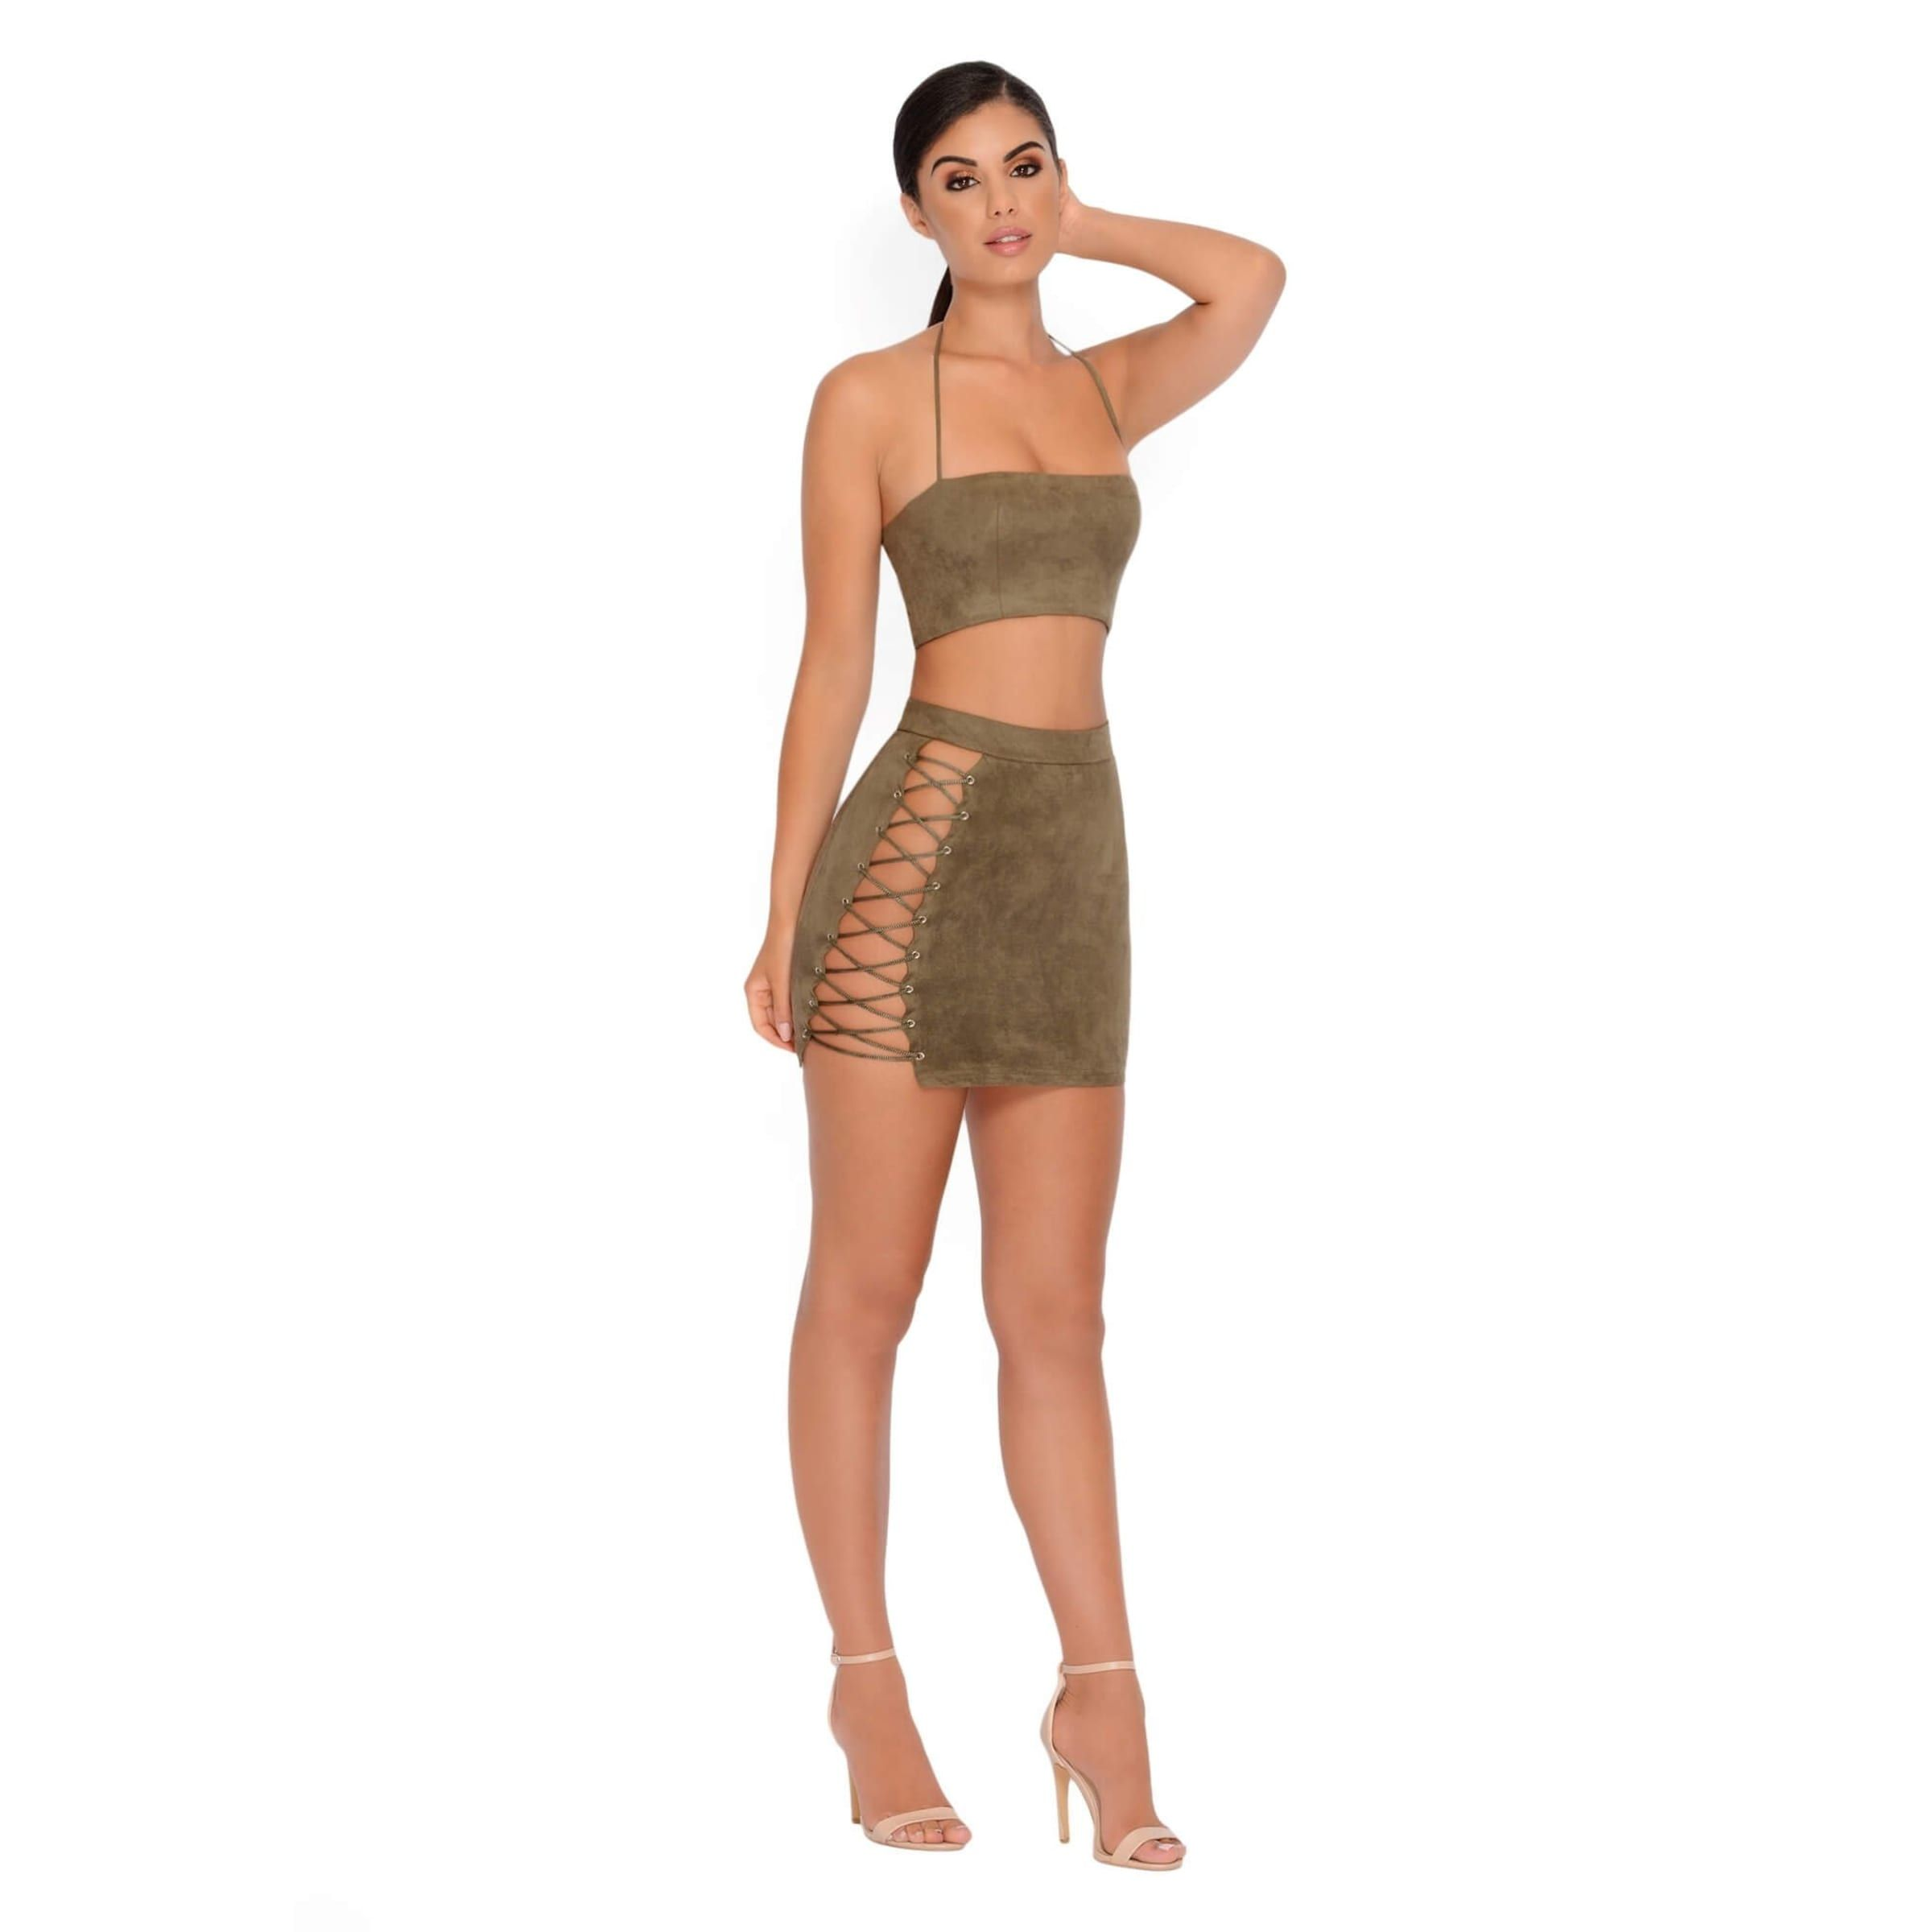 c8ed86d5cc25 Straight Laced Suede Tie Up Two Piece in Khaki Halter Neck, Tied Up, Lace